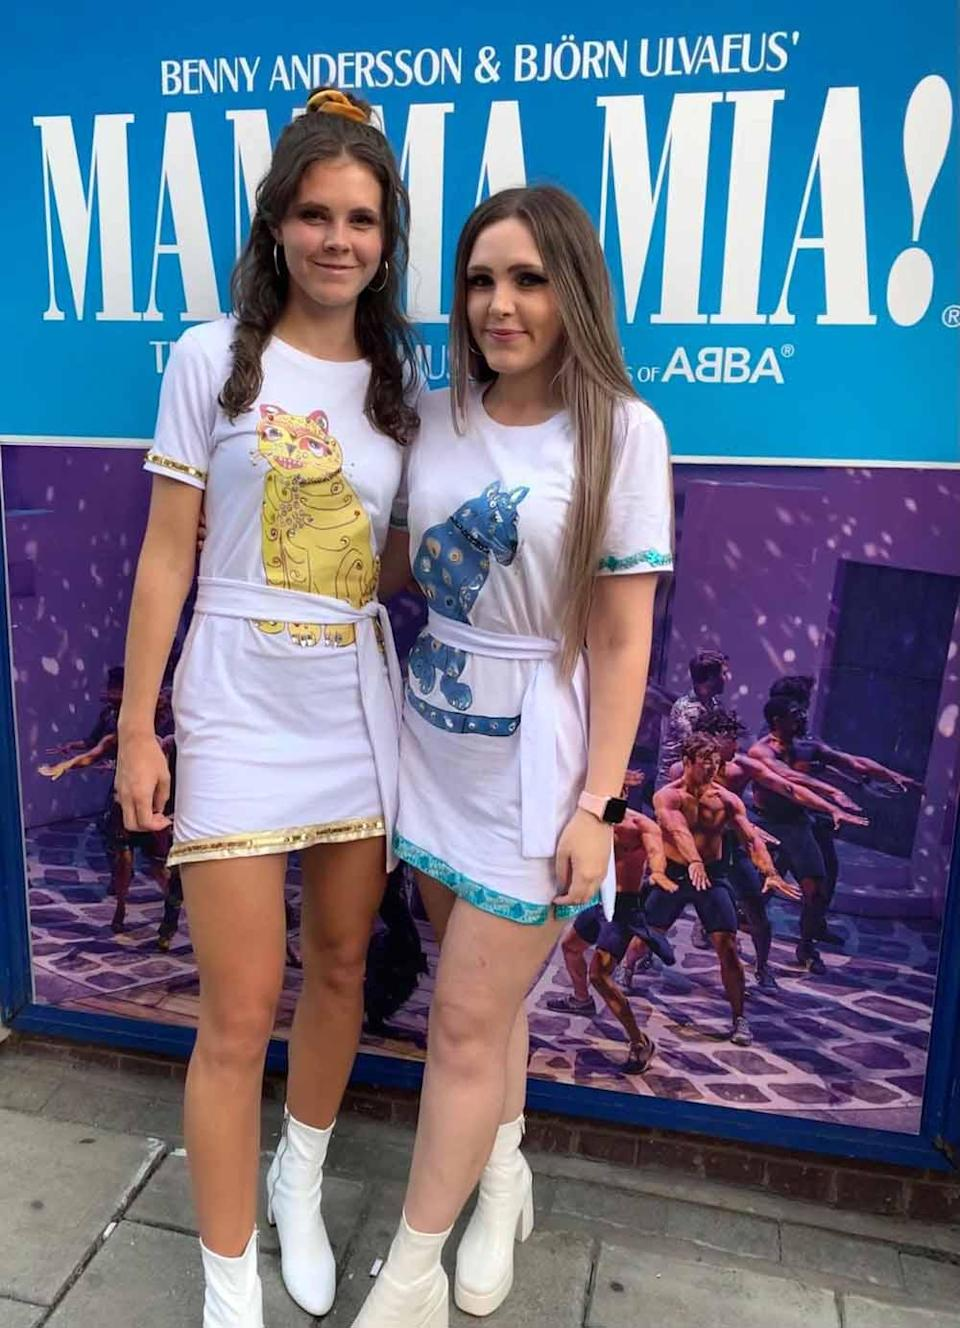 Chloe and Lucy in front of the Mamma Mia sign in September 2021 (Collect/PA Real Life).